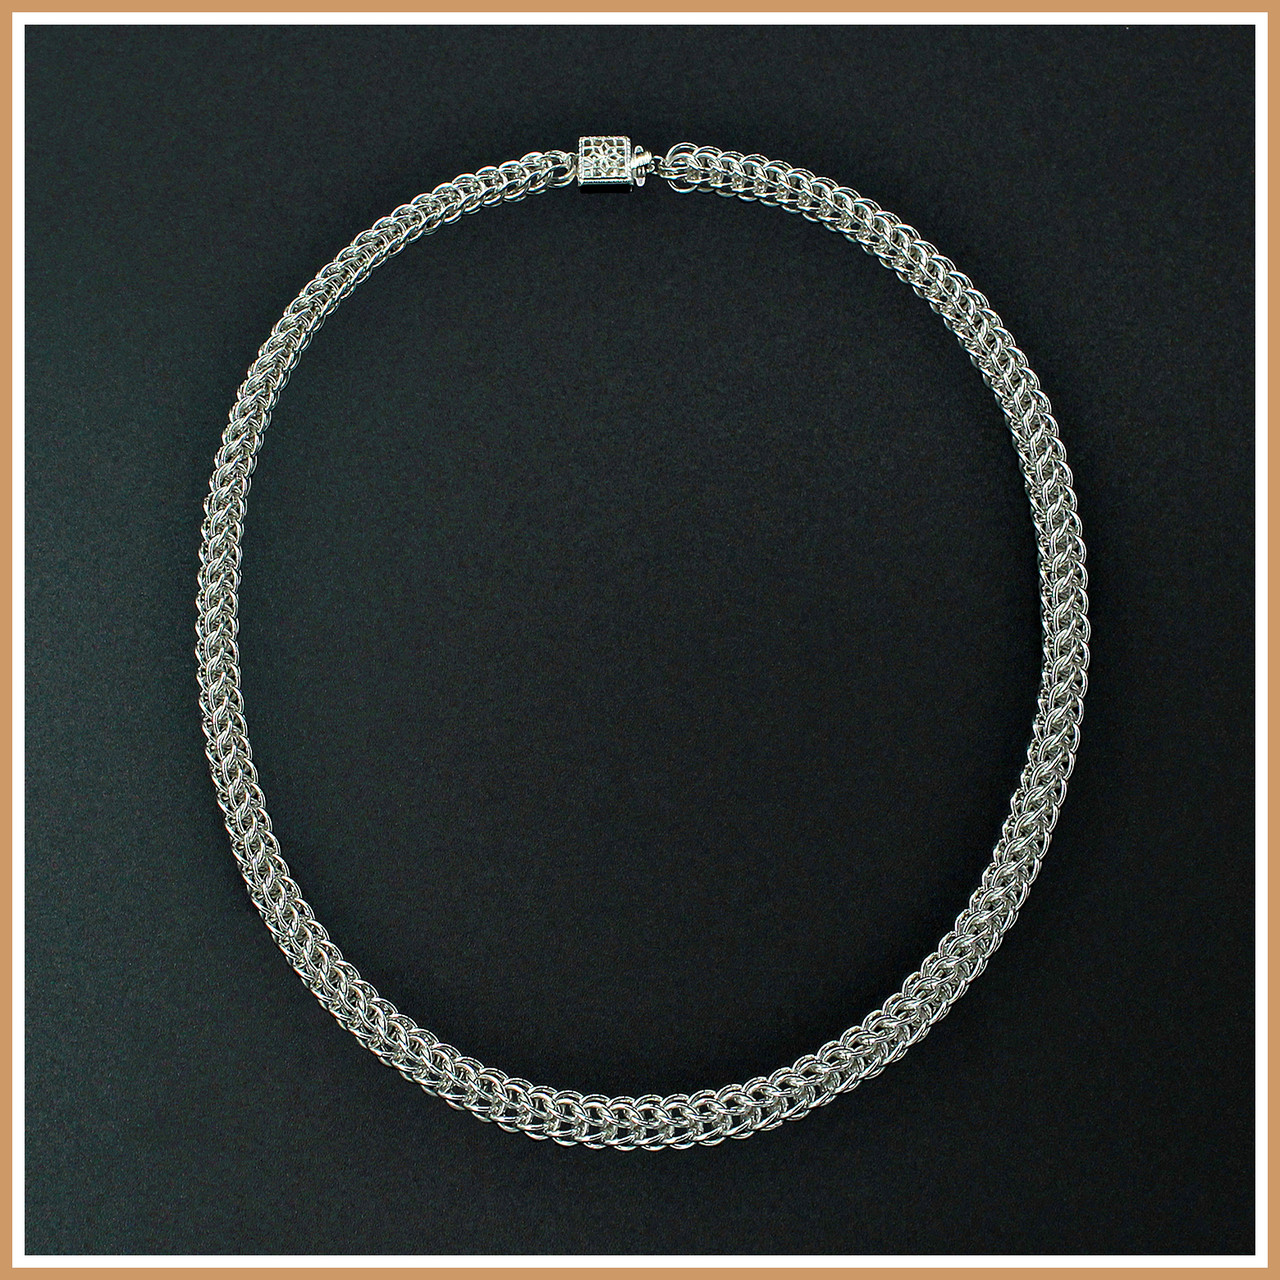 e02e40876b Sterling Silver Persian Chain Necklace | Shop Gemstone, Gold and ...